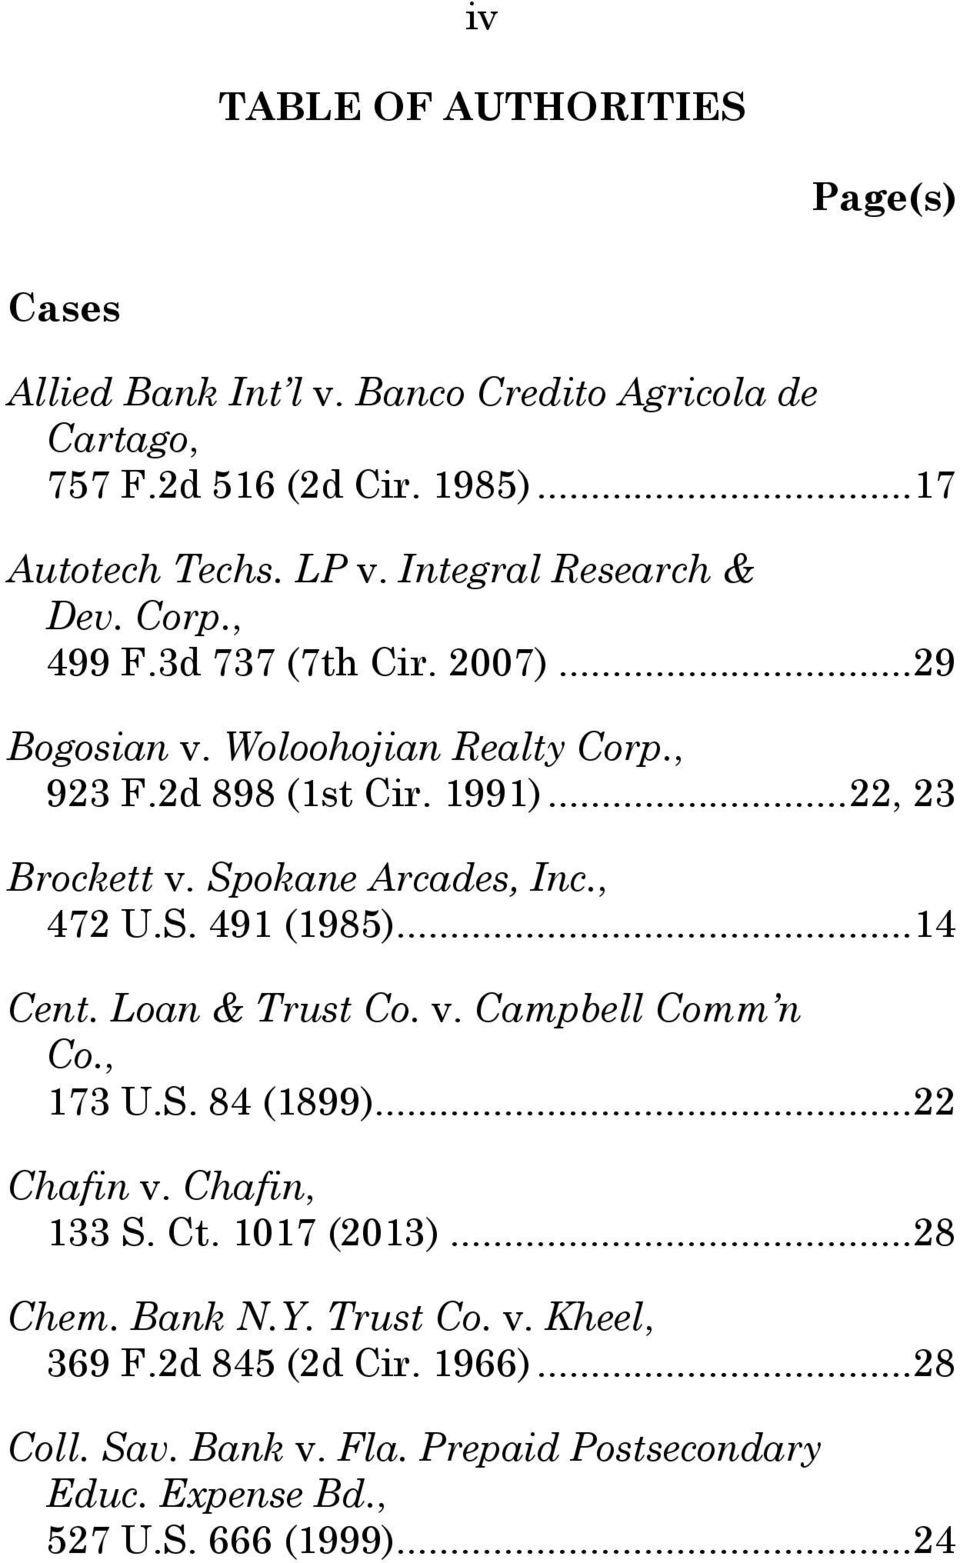 Spokane Arcades, Inc., 472 U.S. 491 (1985)... 14 Cent. Loan & Trust Co. v. Campbell Comm n Co., 173 U.S. 84 (1899)... 22 Chafin v. Chafin, 133 S. Ct.